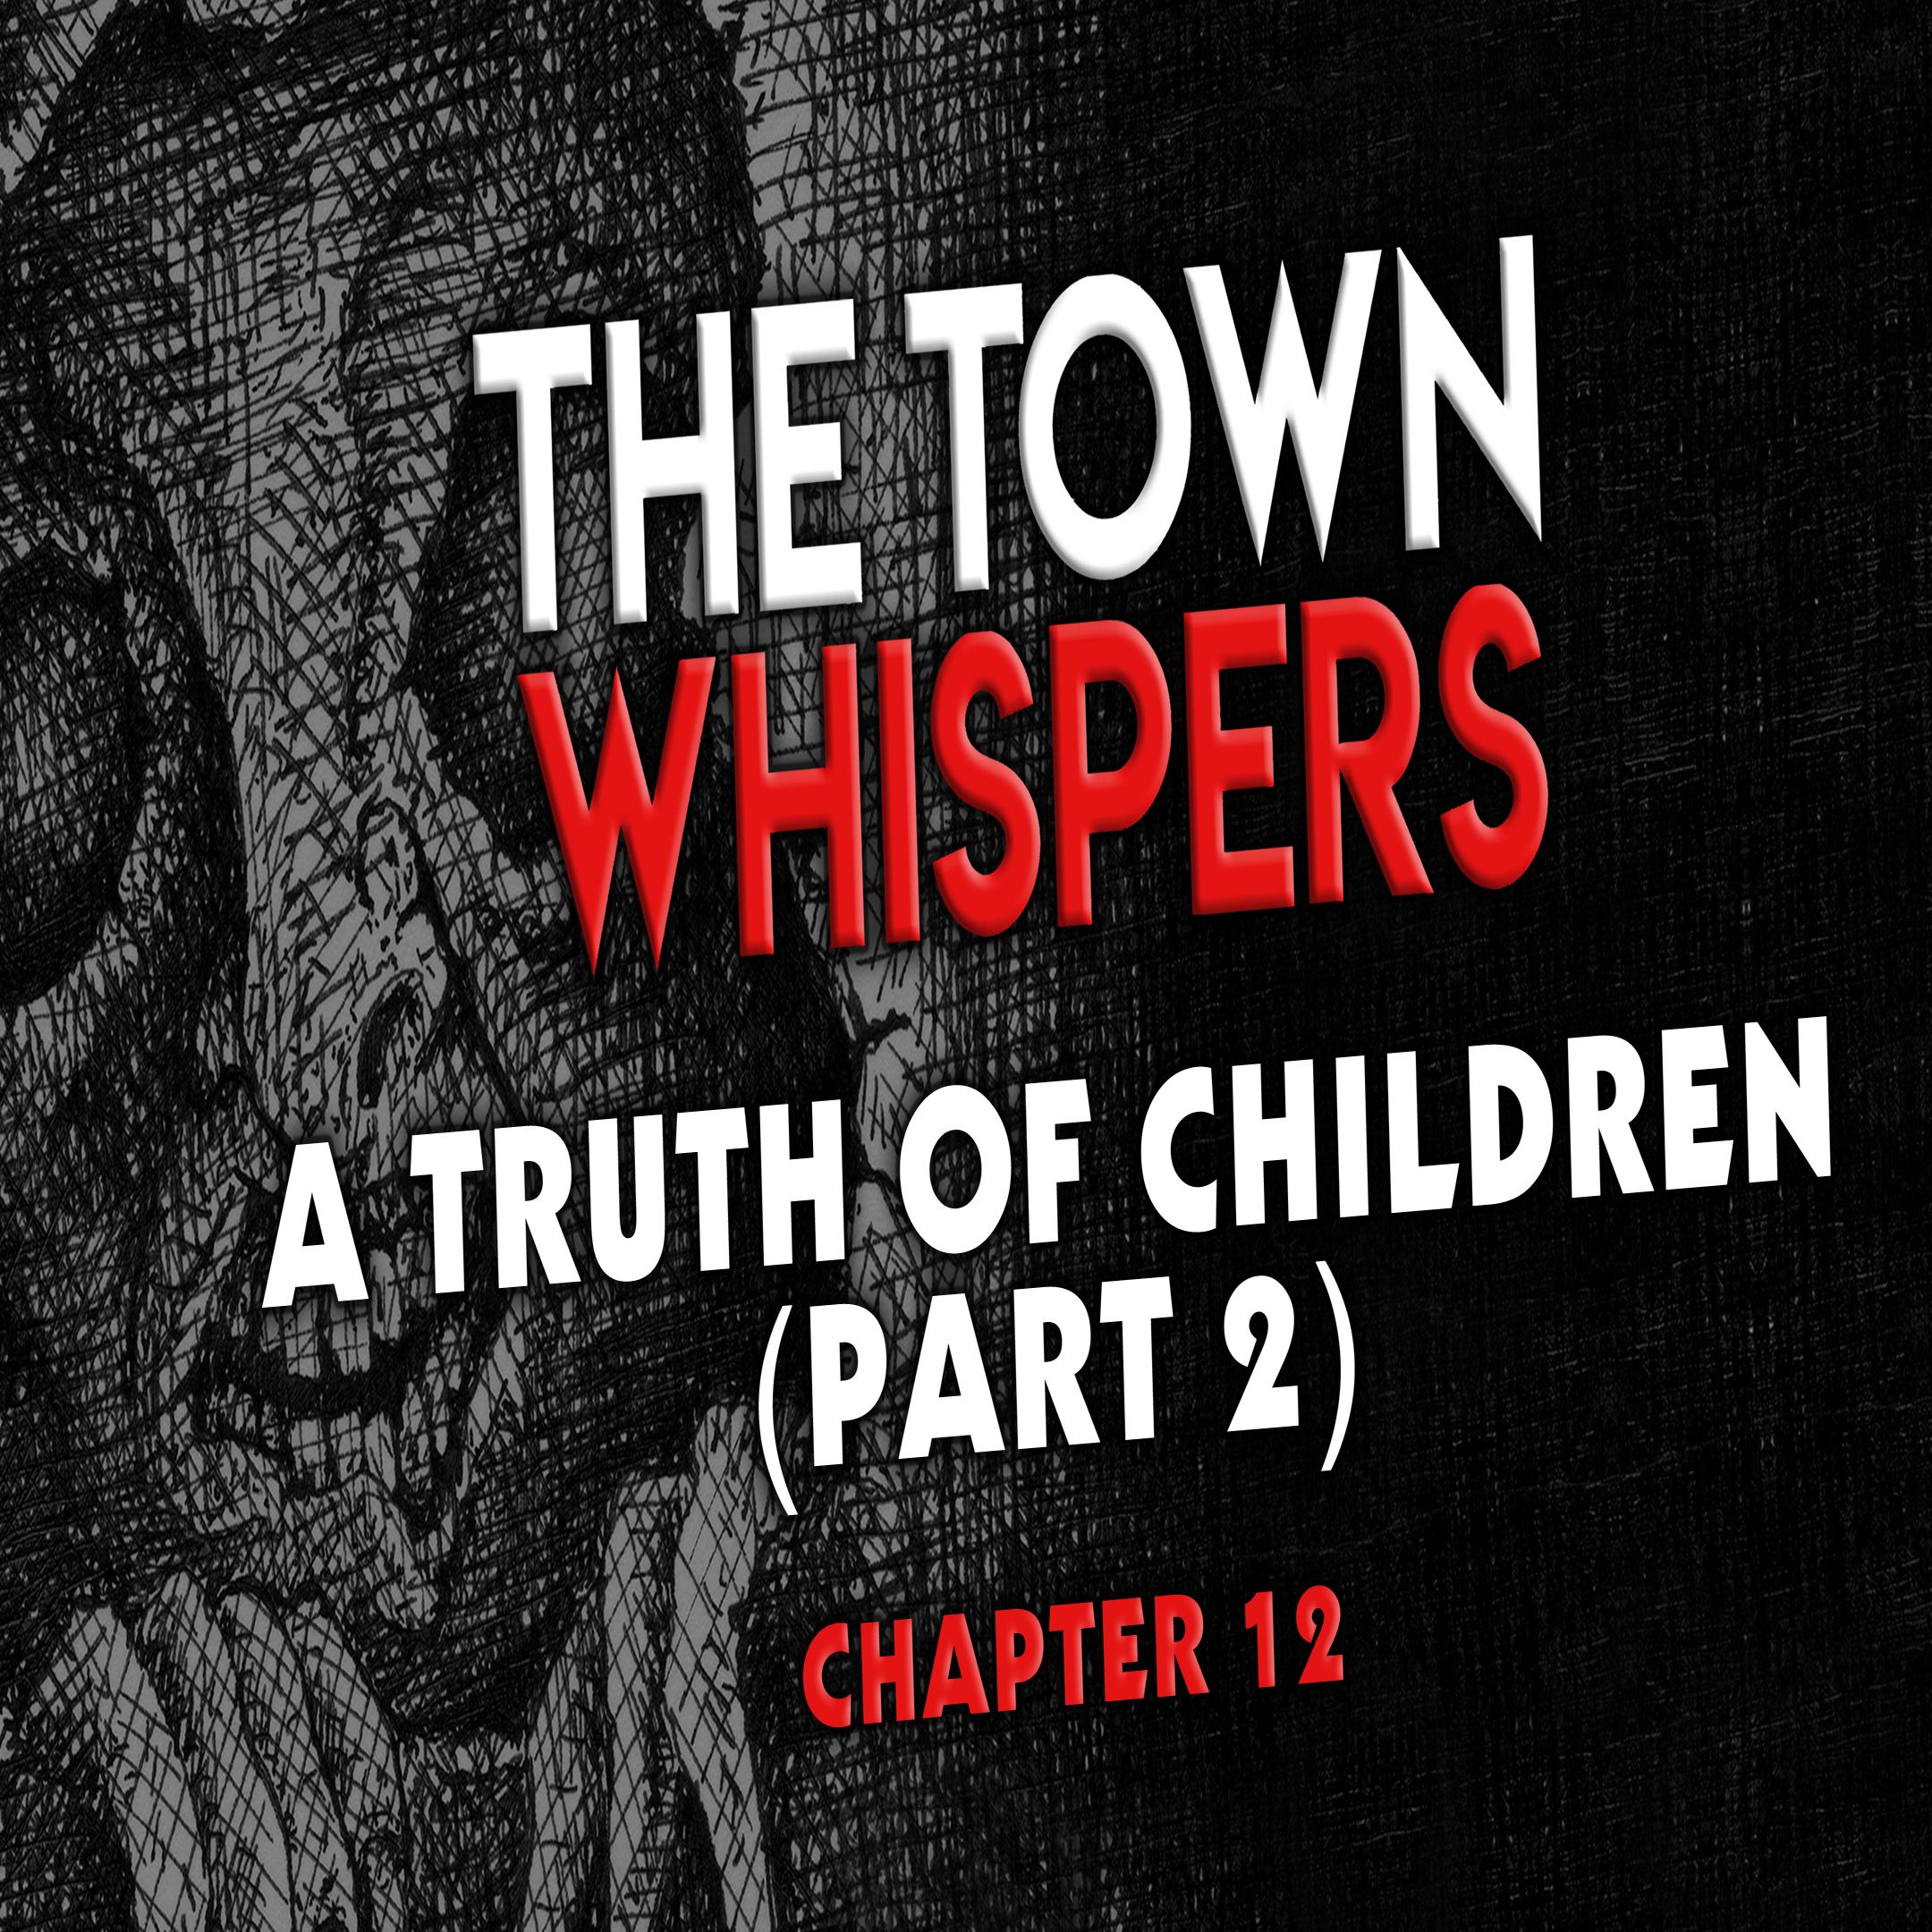 Chapter 12: A Truth of Children (Part 2)